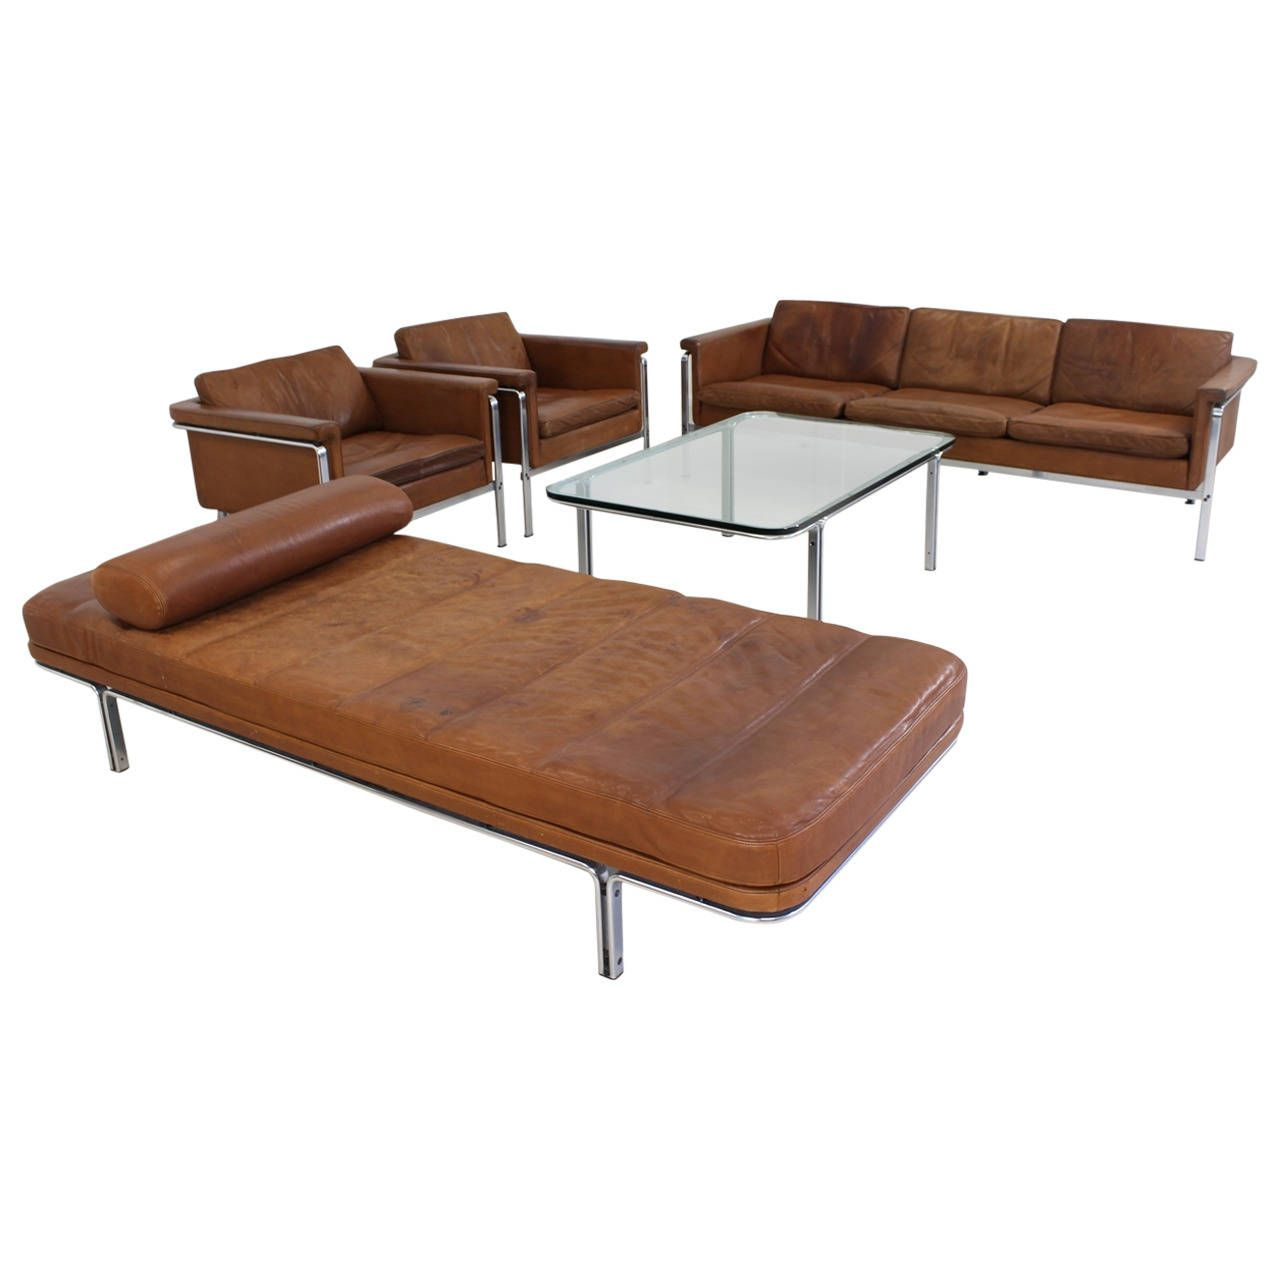 Superb Cognac Leather Living Room Set by Horst Bruning for Kill ...